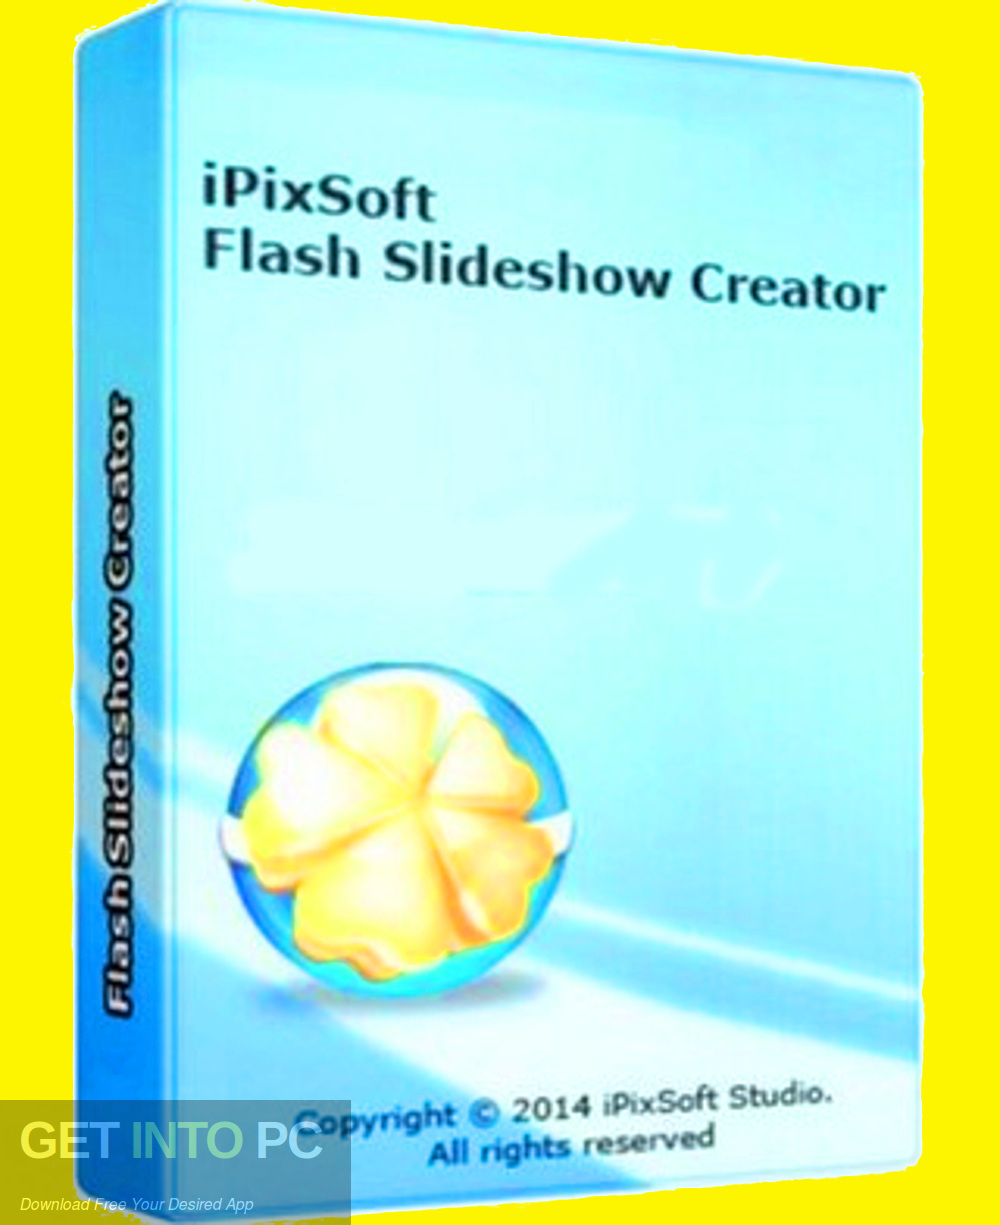 iPixSoft Flash Slideshow Creator Free Download-GetintoPC.com